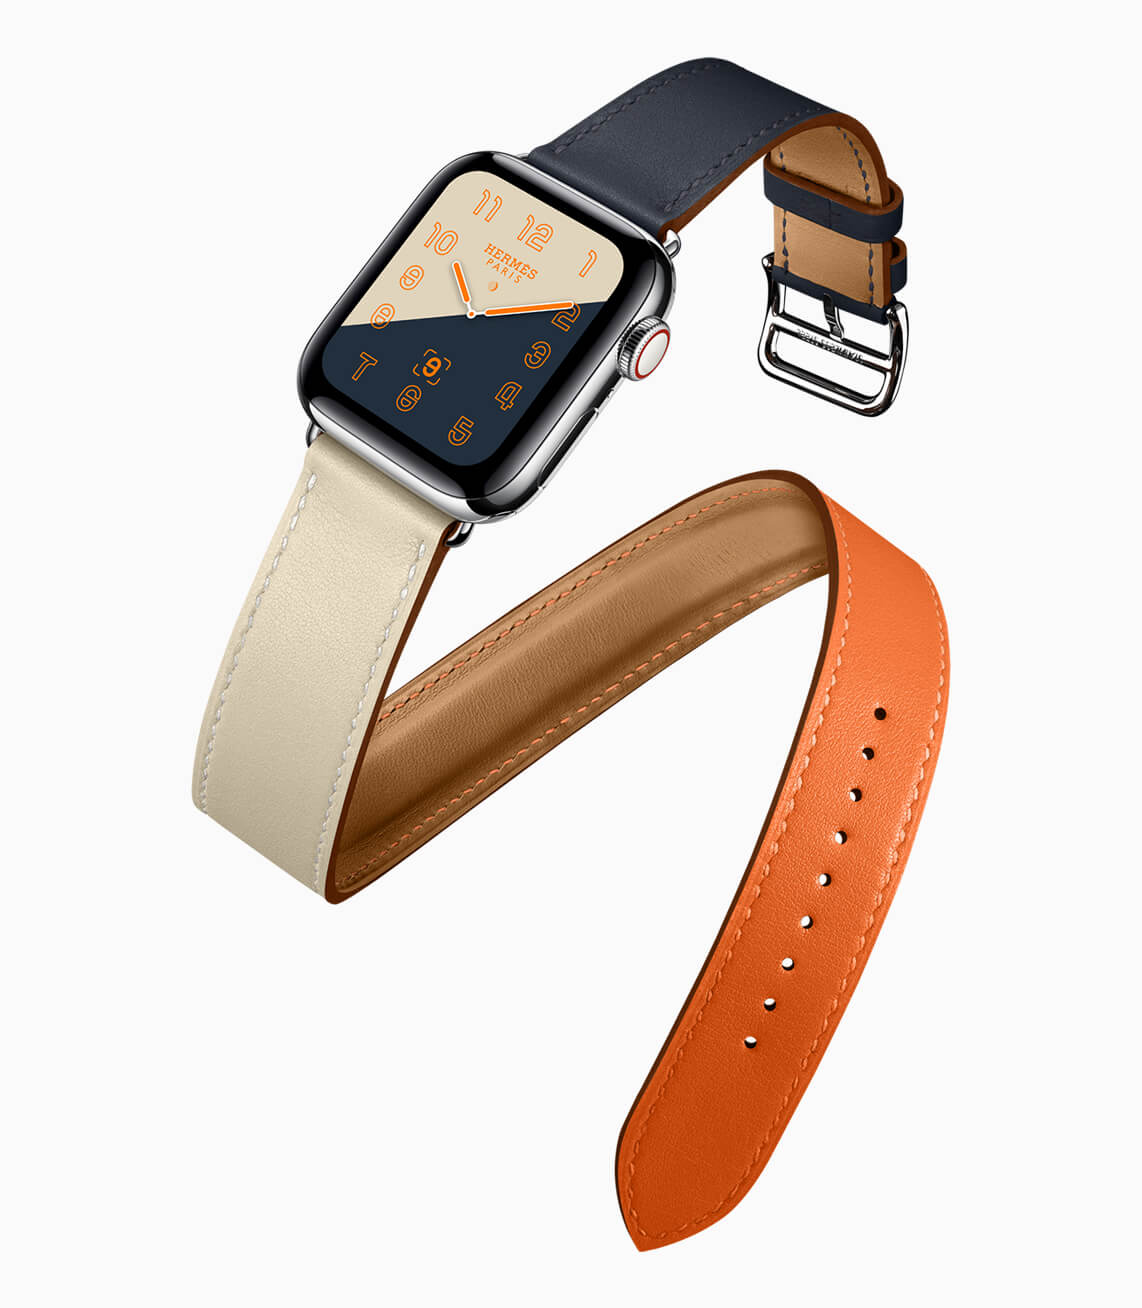 Apple Watch Series4 Hermes double tour 09122018 - Apple Watch Series 4 é lançado com eletrocardiograma